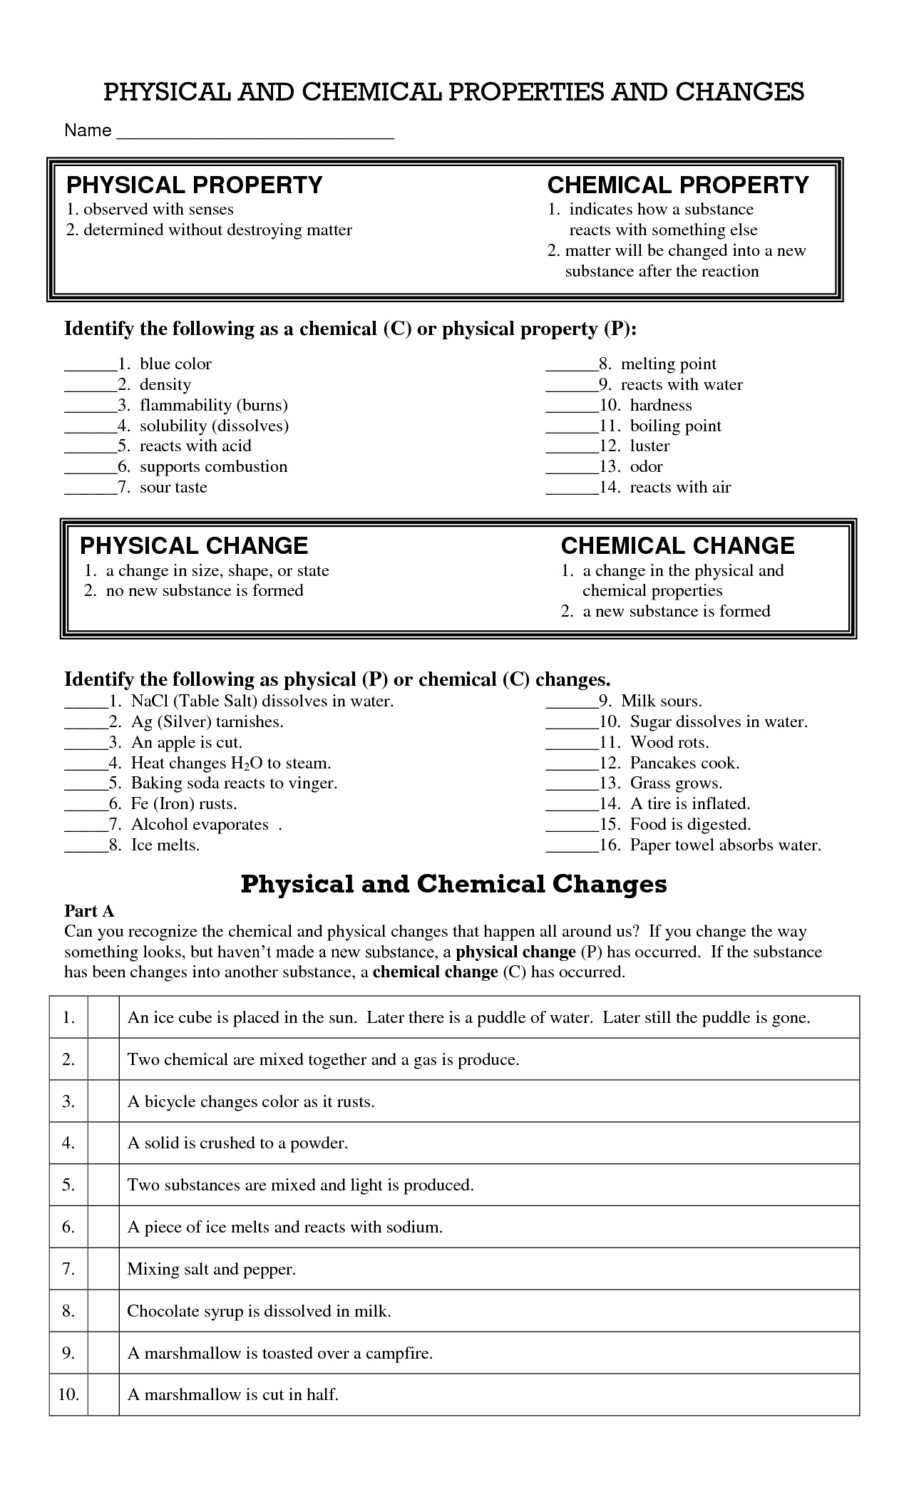 Physical and Chemical Changes   Worksheet   Education further Worksheet  Chemical Physical Change   Matter   Pinterest   Physics furthermore Chemical And Physical Changes Worksheets Physical Chemical as well  additionally Identify Chemical and Physical Changes Worksheet by jjms   TpT in addition worksheets  Physical Vs Chemical Reactions Changes Worksheets further Physical Vs Chemical Changes Worksheet Worksheets for all   Download as well  moreover Physical And Chemical Change Worksheet additionally Physical Chemical Changes Worksheet Fresh Worksheet 2 Physical also  moreover Introduction to Physical and Chemical Changes Worksheet   TpT besides Physical and Chemical Properties and Changes Worksheet 2 as well Gallery Of Physical Change Worksheet And Chemical Changes Properties additionally Physical Chemical Changes Worksheet Fresh Science Worksheet Physical further . on physical or chemical change worksheet